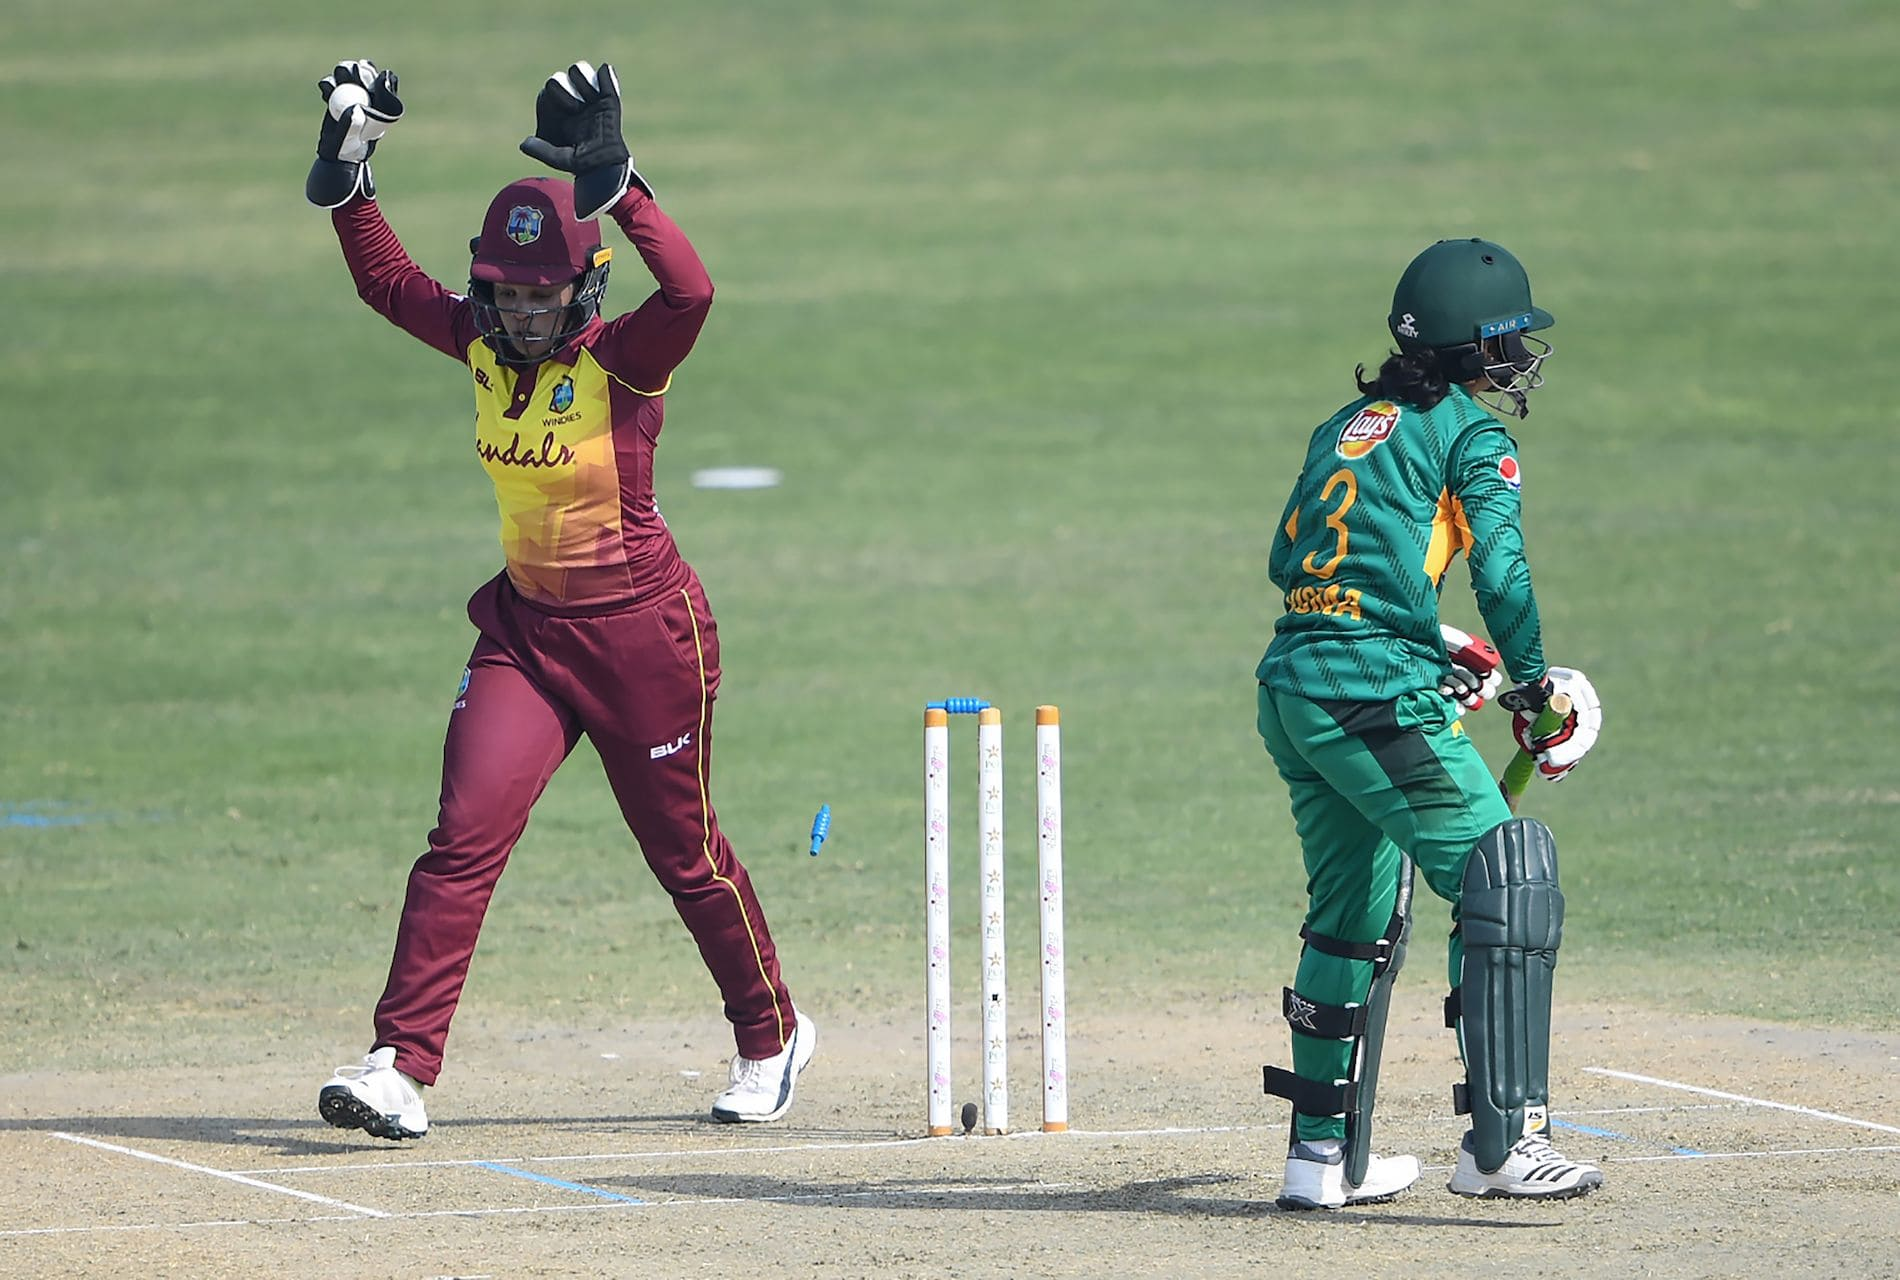 Merissa Aguilleira, former West Indies Women captain, retires from international cricket